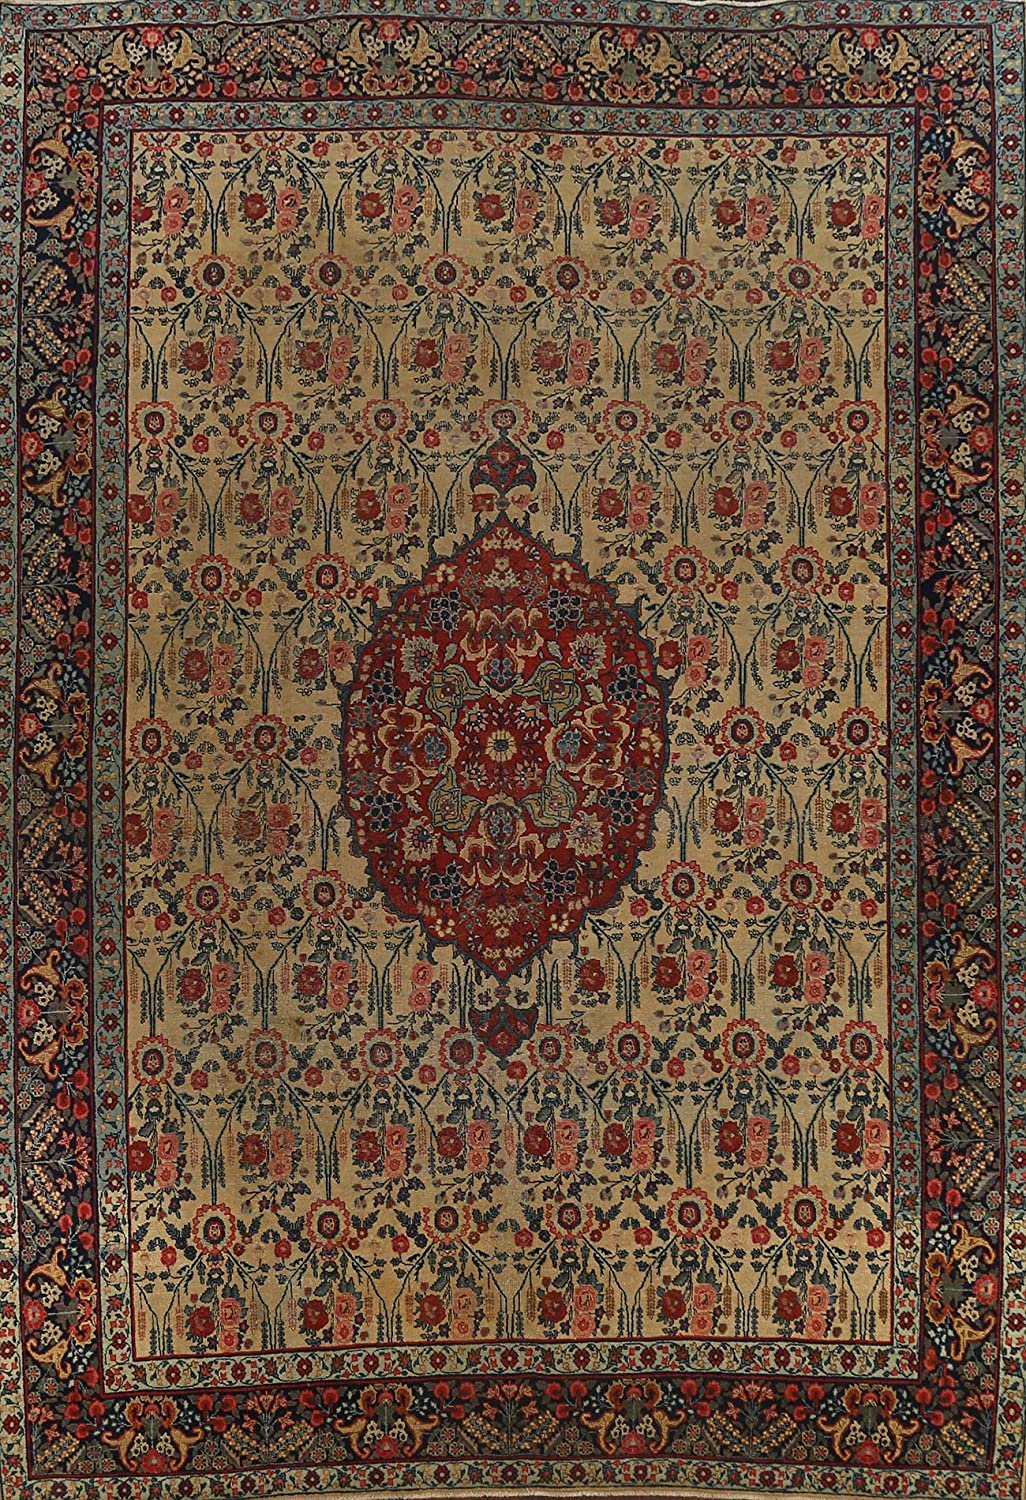 Pre-1900 Antique Floral Fixed price for sale Vegetable Dye Area H Oriental Rug Tebriz Indianapolis Mall